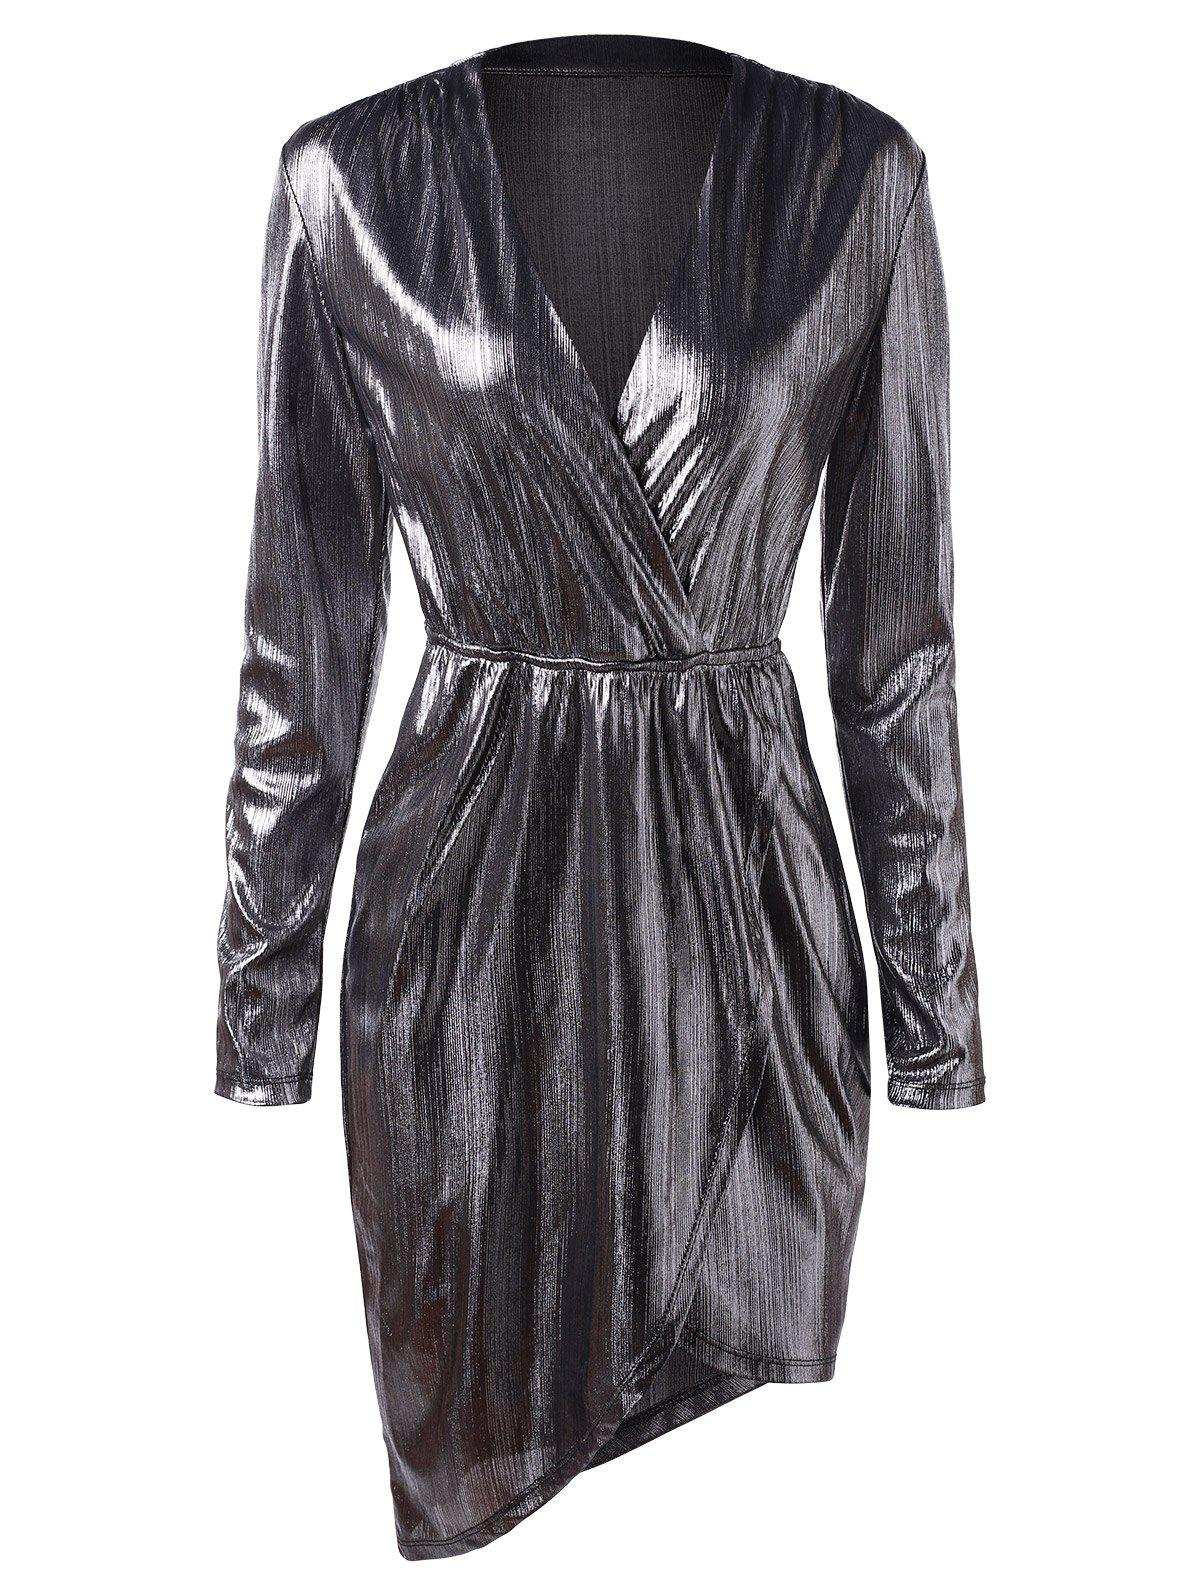 Plunging Neck Long Sleeves Metallic Party Dress - SILVER XL